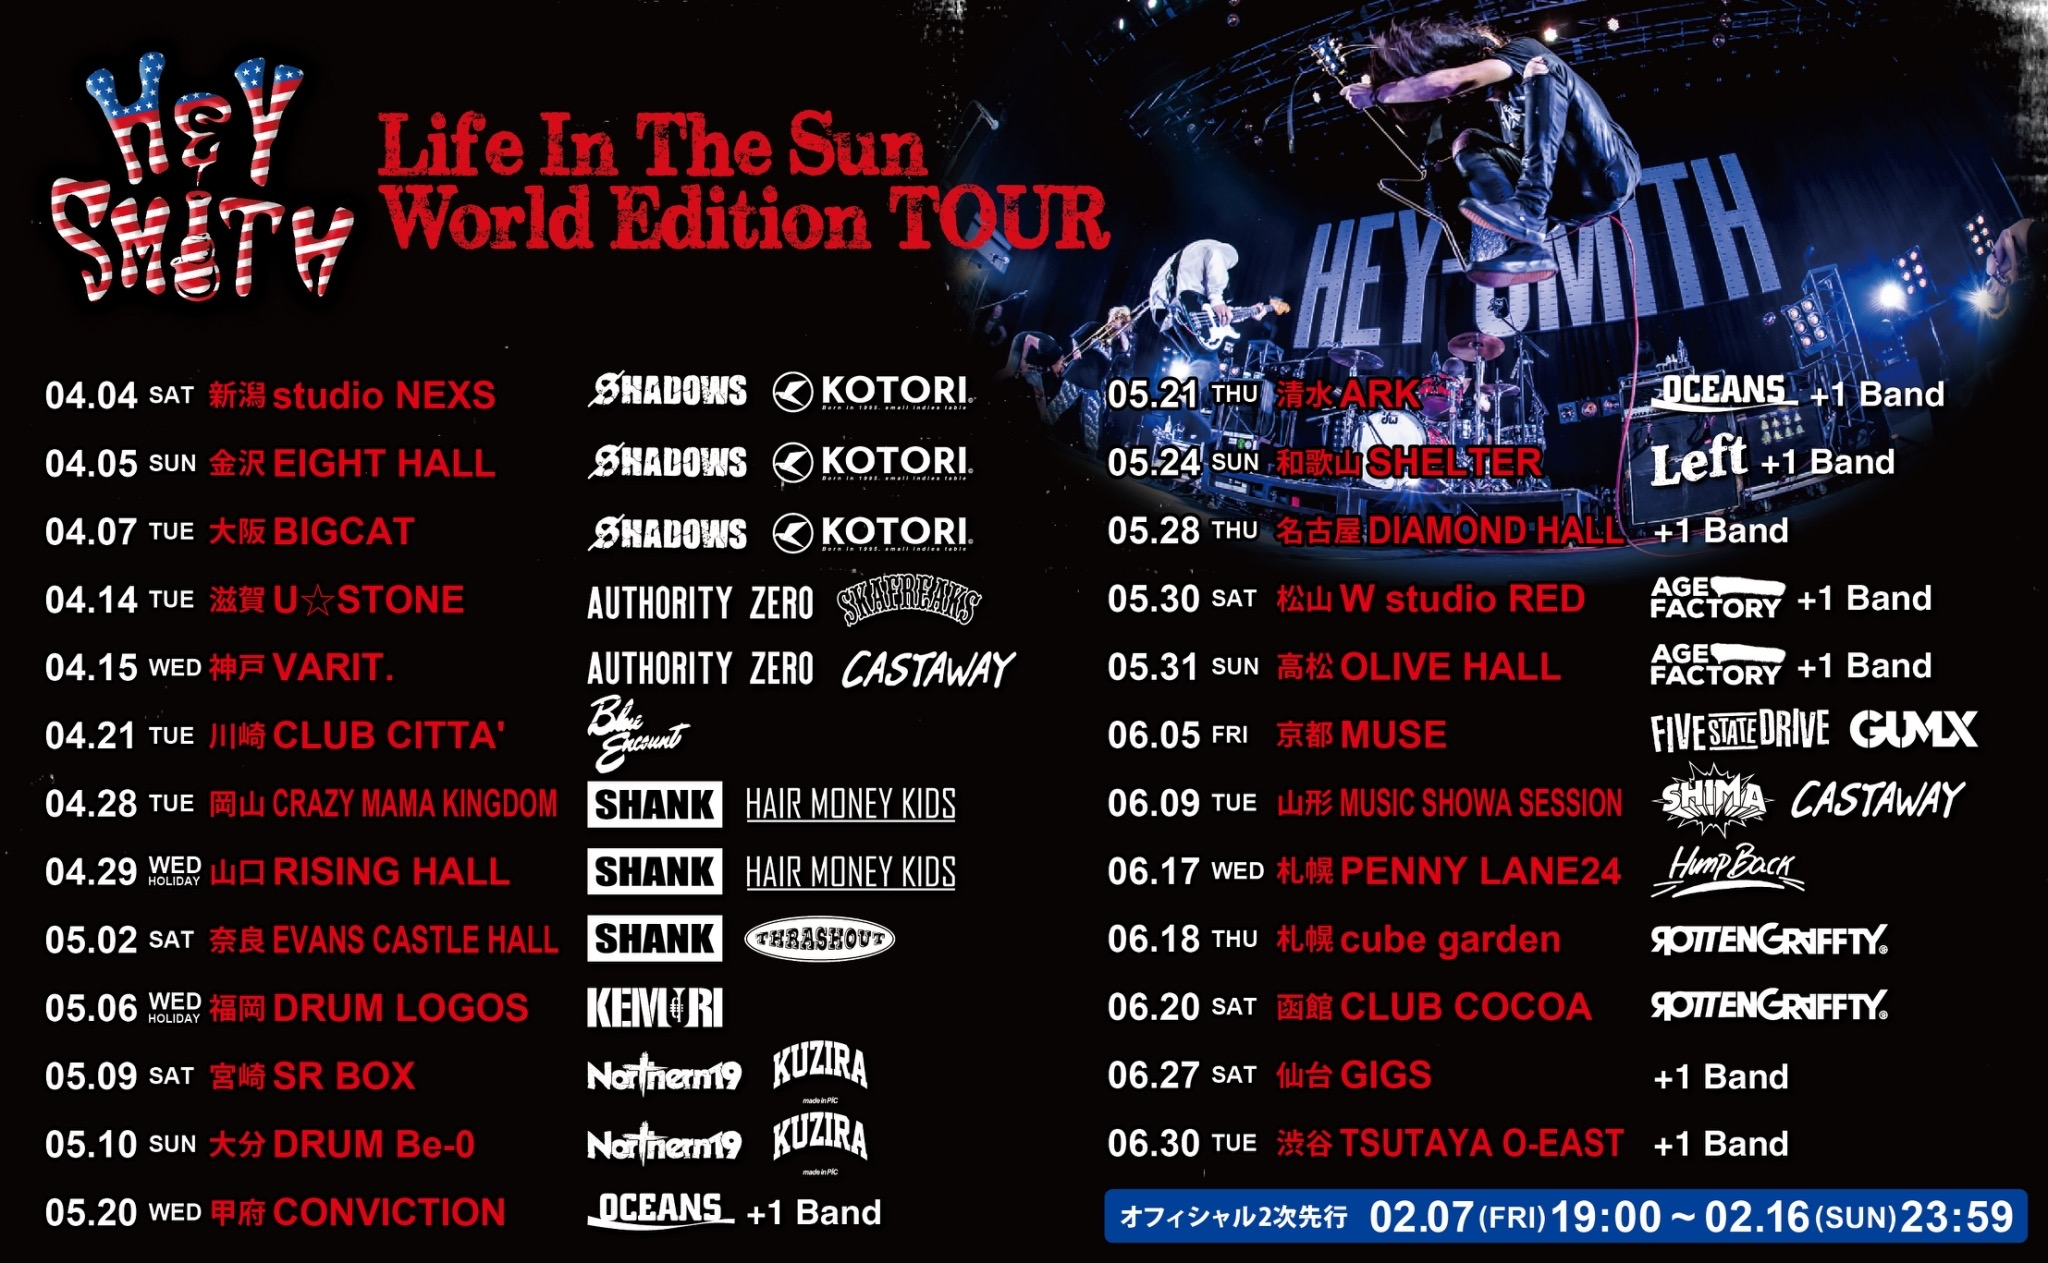 HEY SMITH 'Life In The Sun World Edition TOUR'